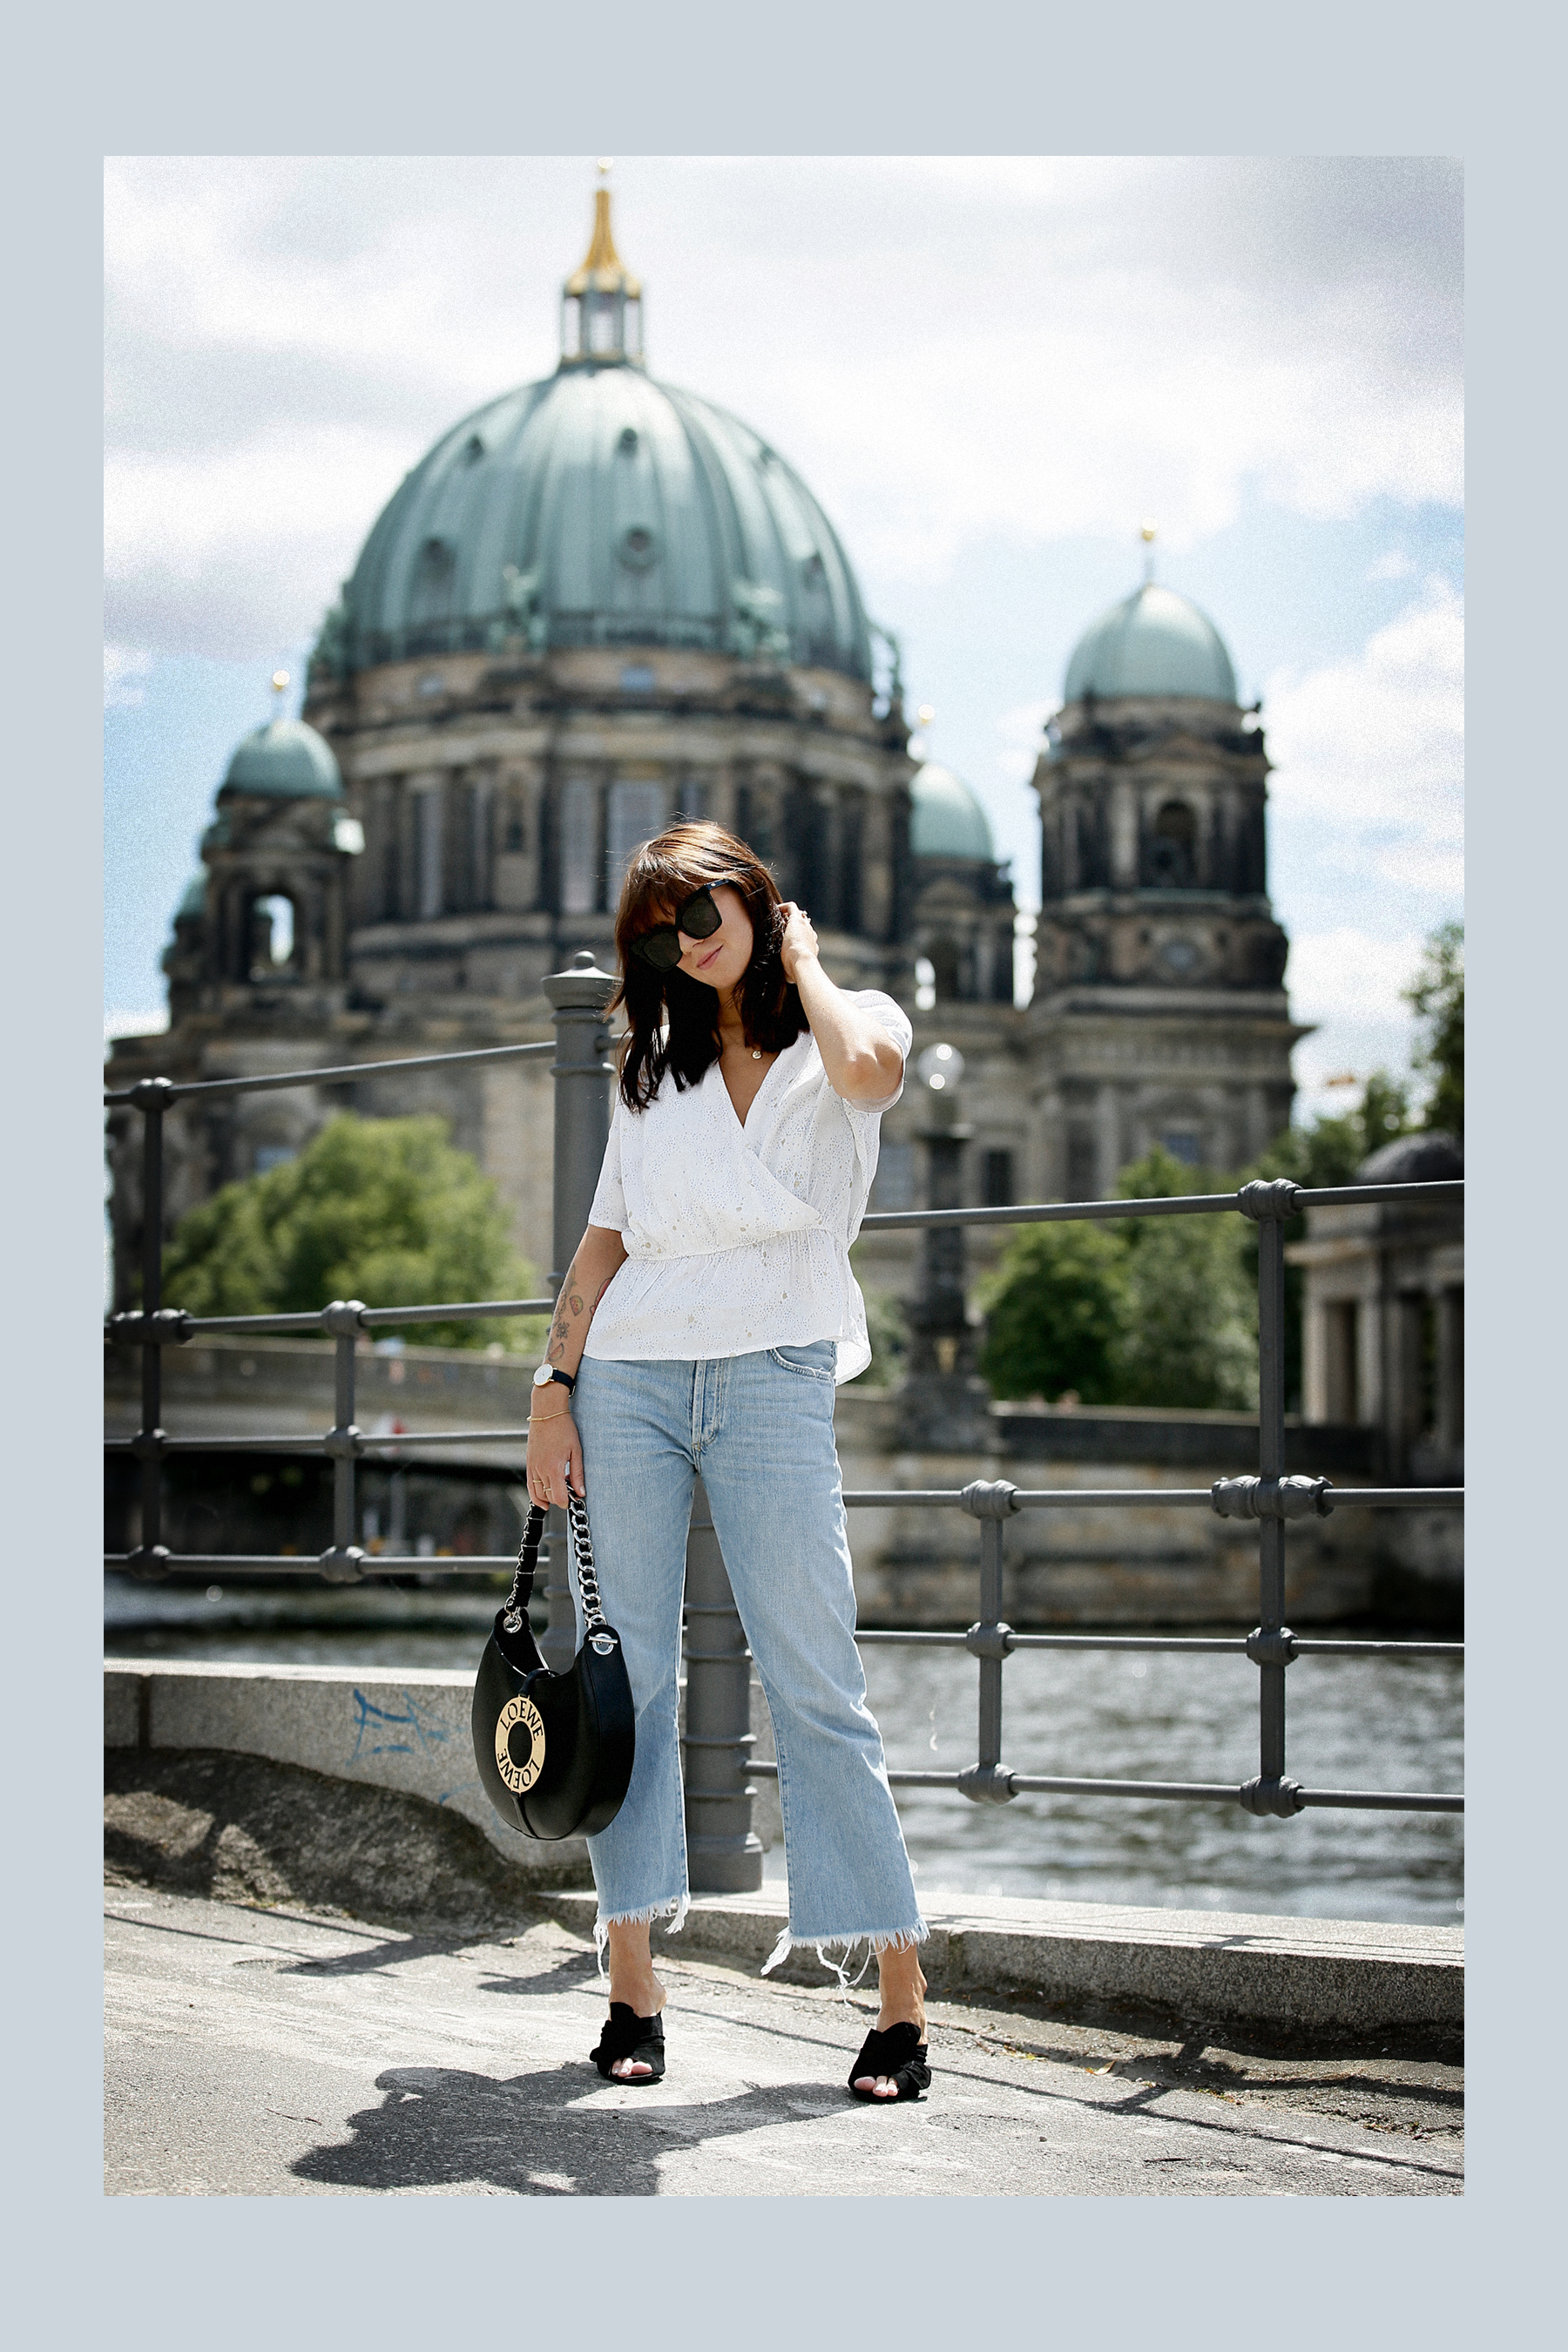 outfit berlin dom museumsinsel denim white blouse parisienne mbym jeanne damas style bangs brunette chic look outfitblogger breuninger loewe joyce bag mcm sunglasses summer german fashion blogger cats & dogs modeblog ricarda schernus max bechmann foto 8